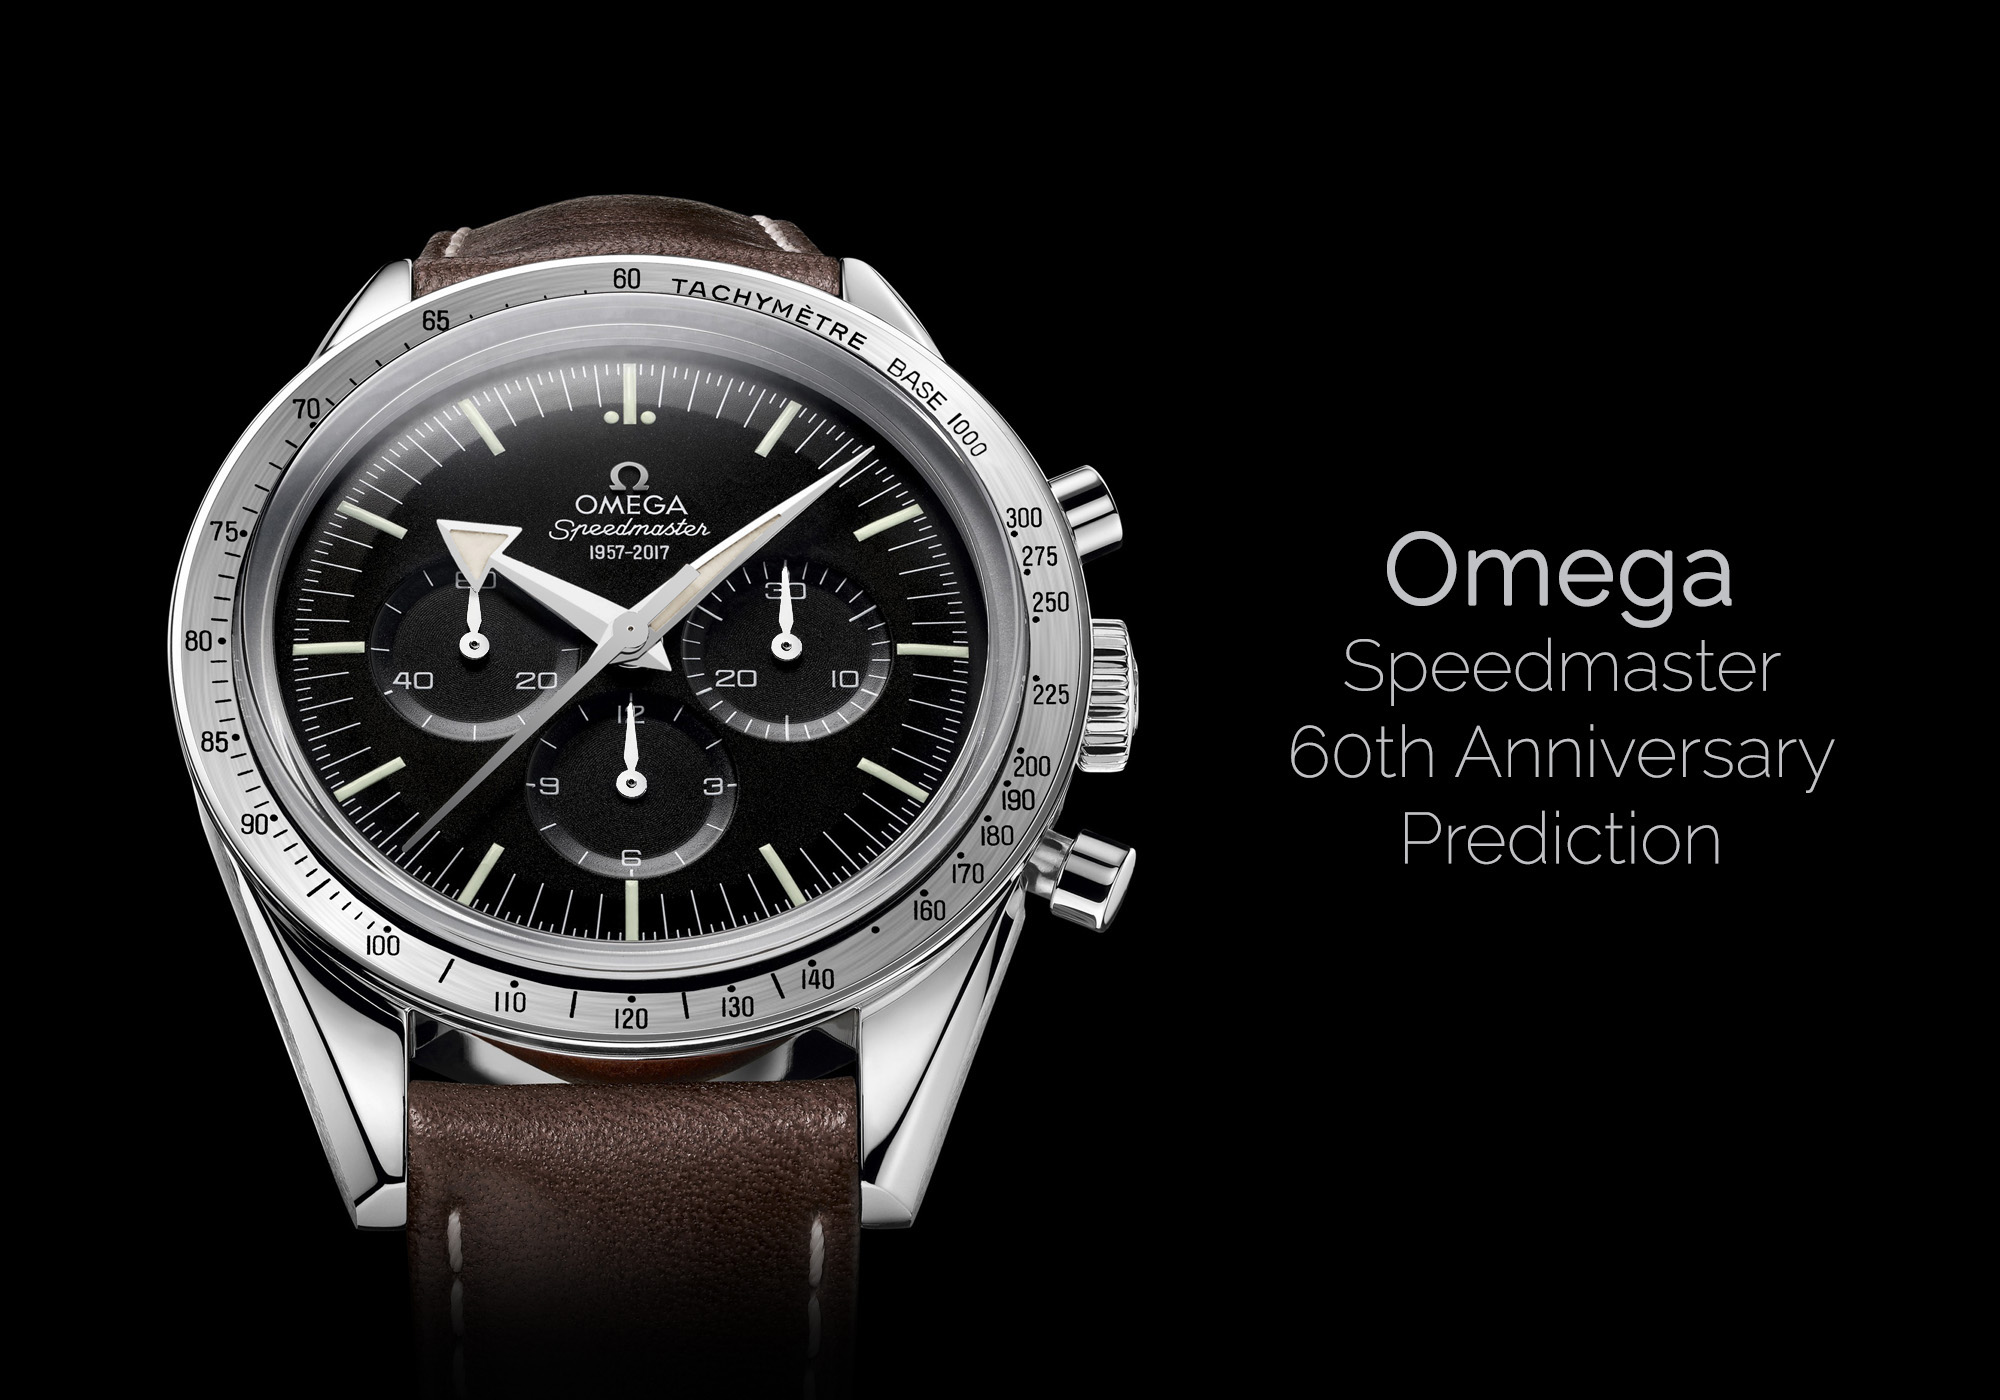 Knights Of Round Table Watch When Omega Re Issues The Speedmaster Mark Ii Monochromes Knights